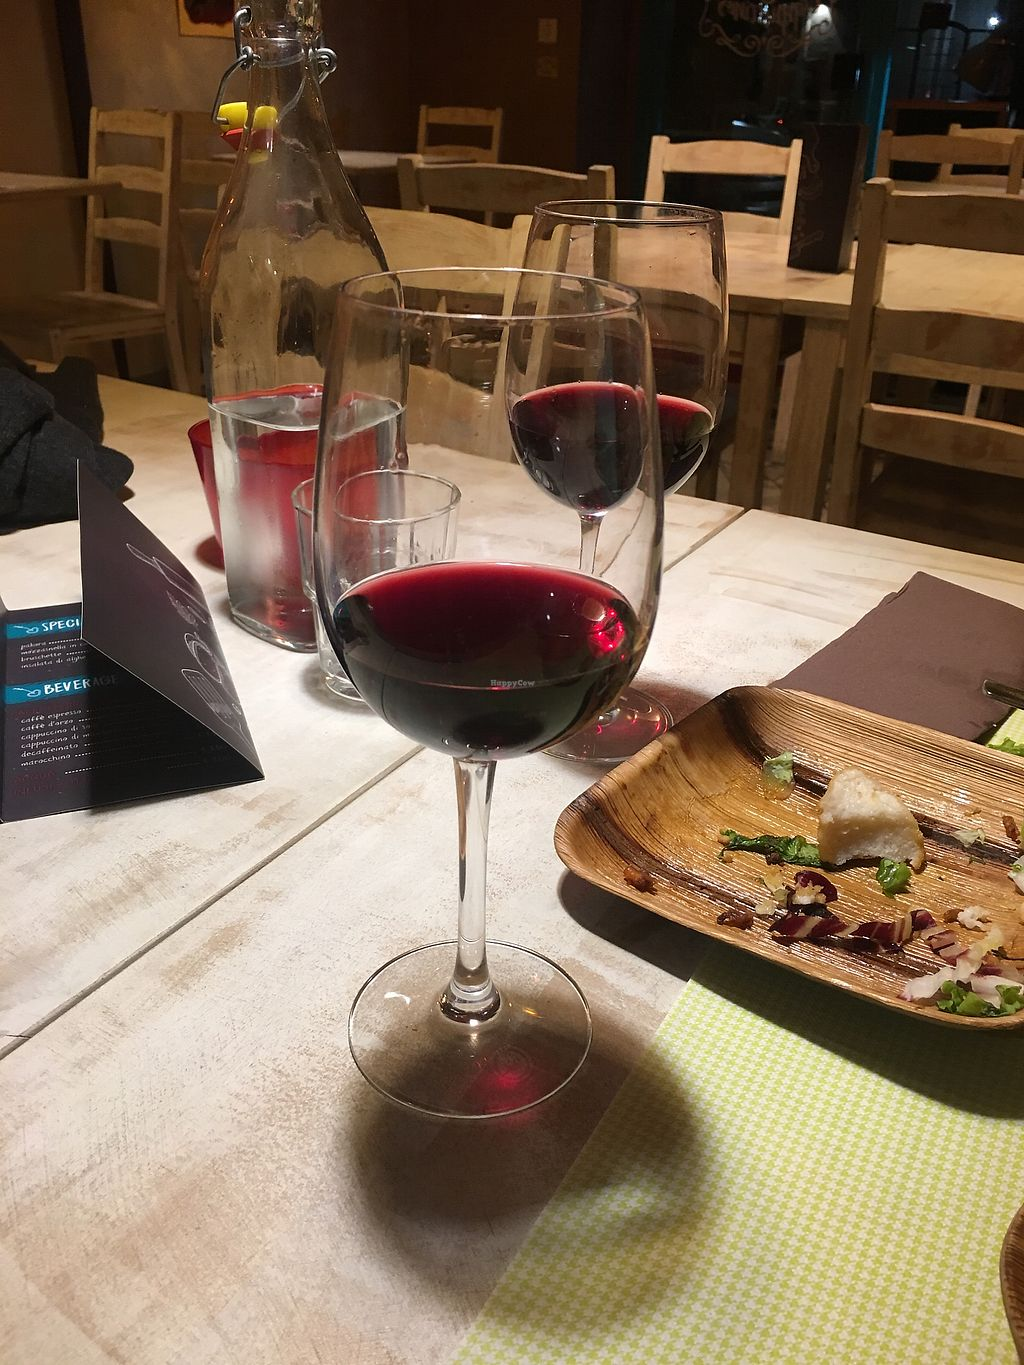 """Photo of Vegamore  by <a href=""""/members/profile/Christi_Lynne"""">Christi_Lynne</a> <br/>Great wine and food! <br/> September 9, 2017  - <a href='/contact/abuse/image/22571/302661'>Report</a>"""